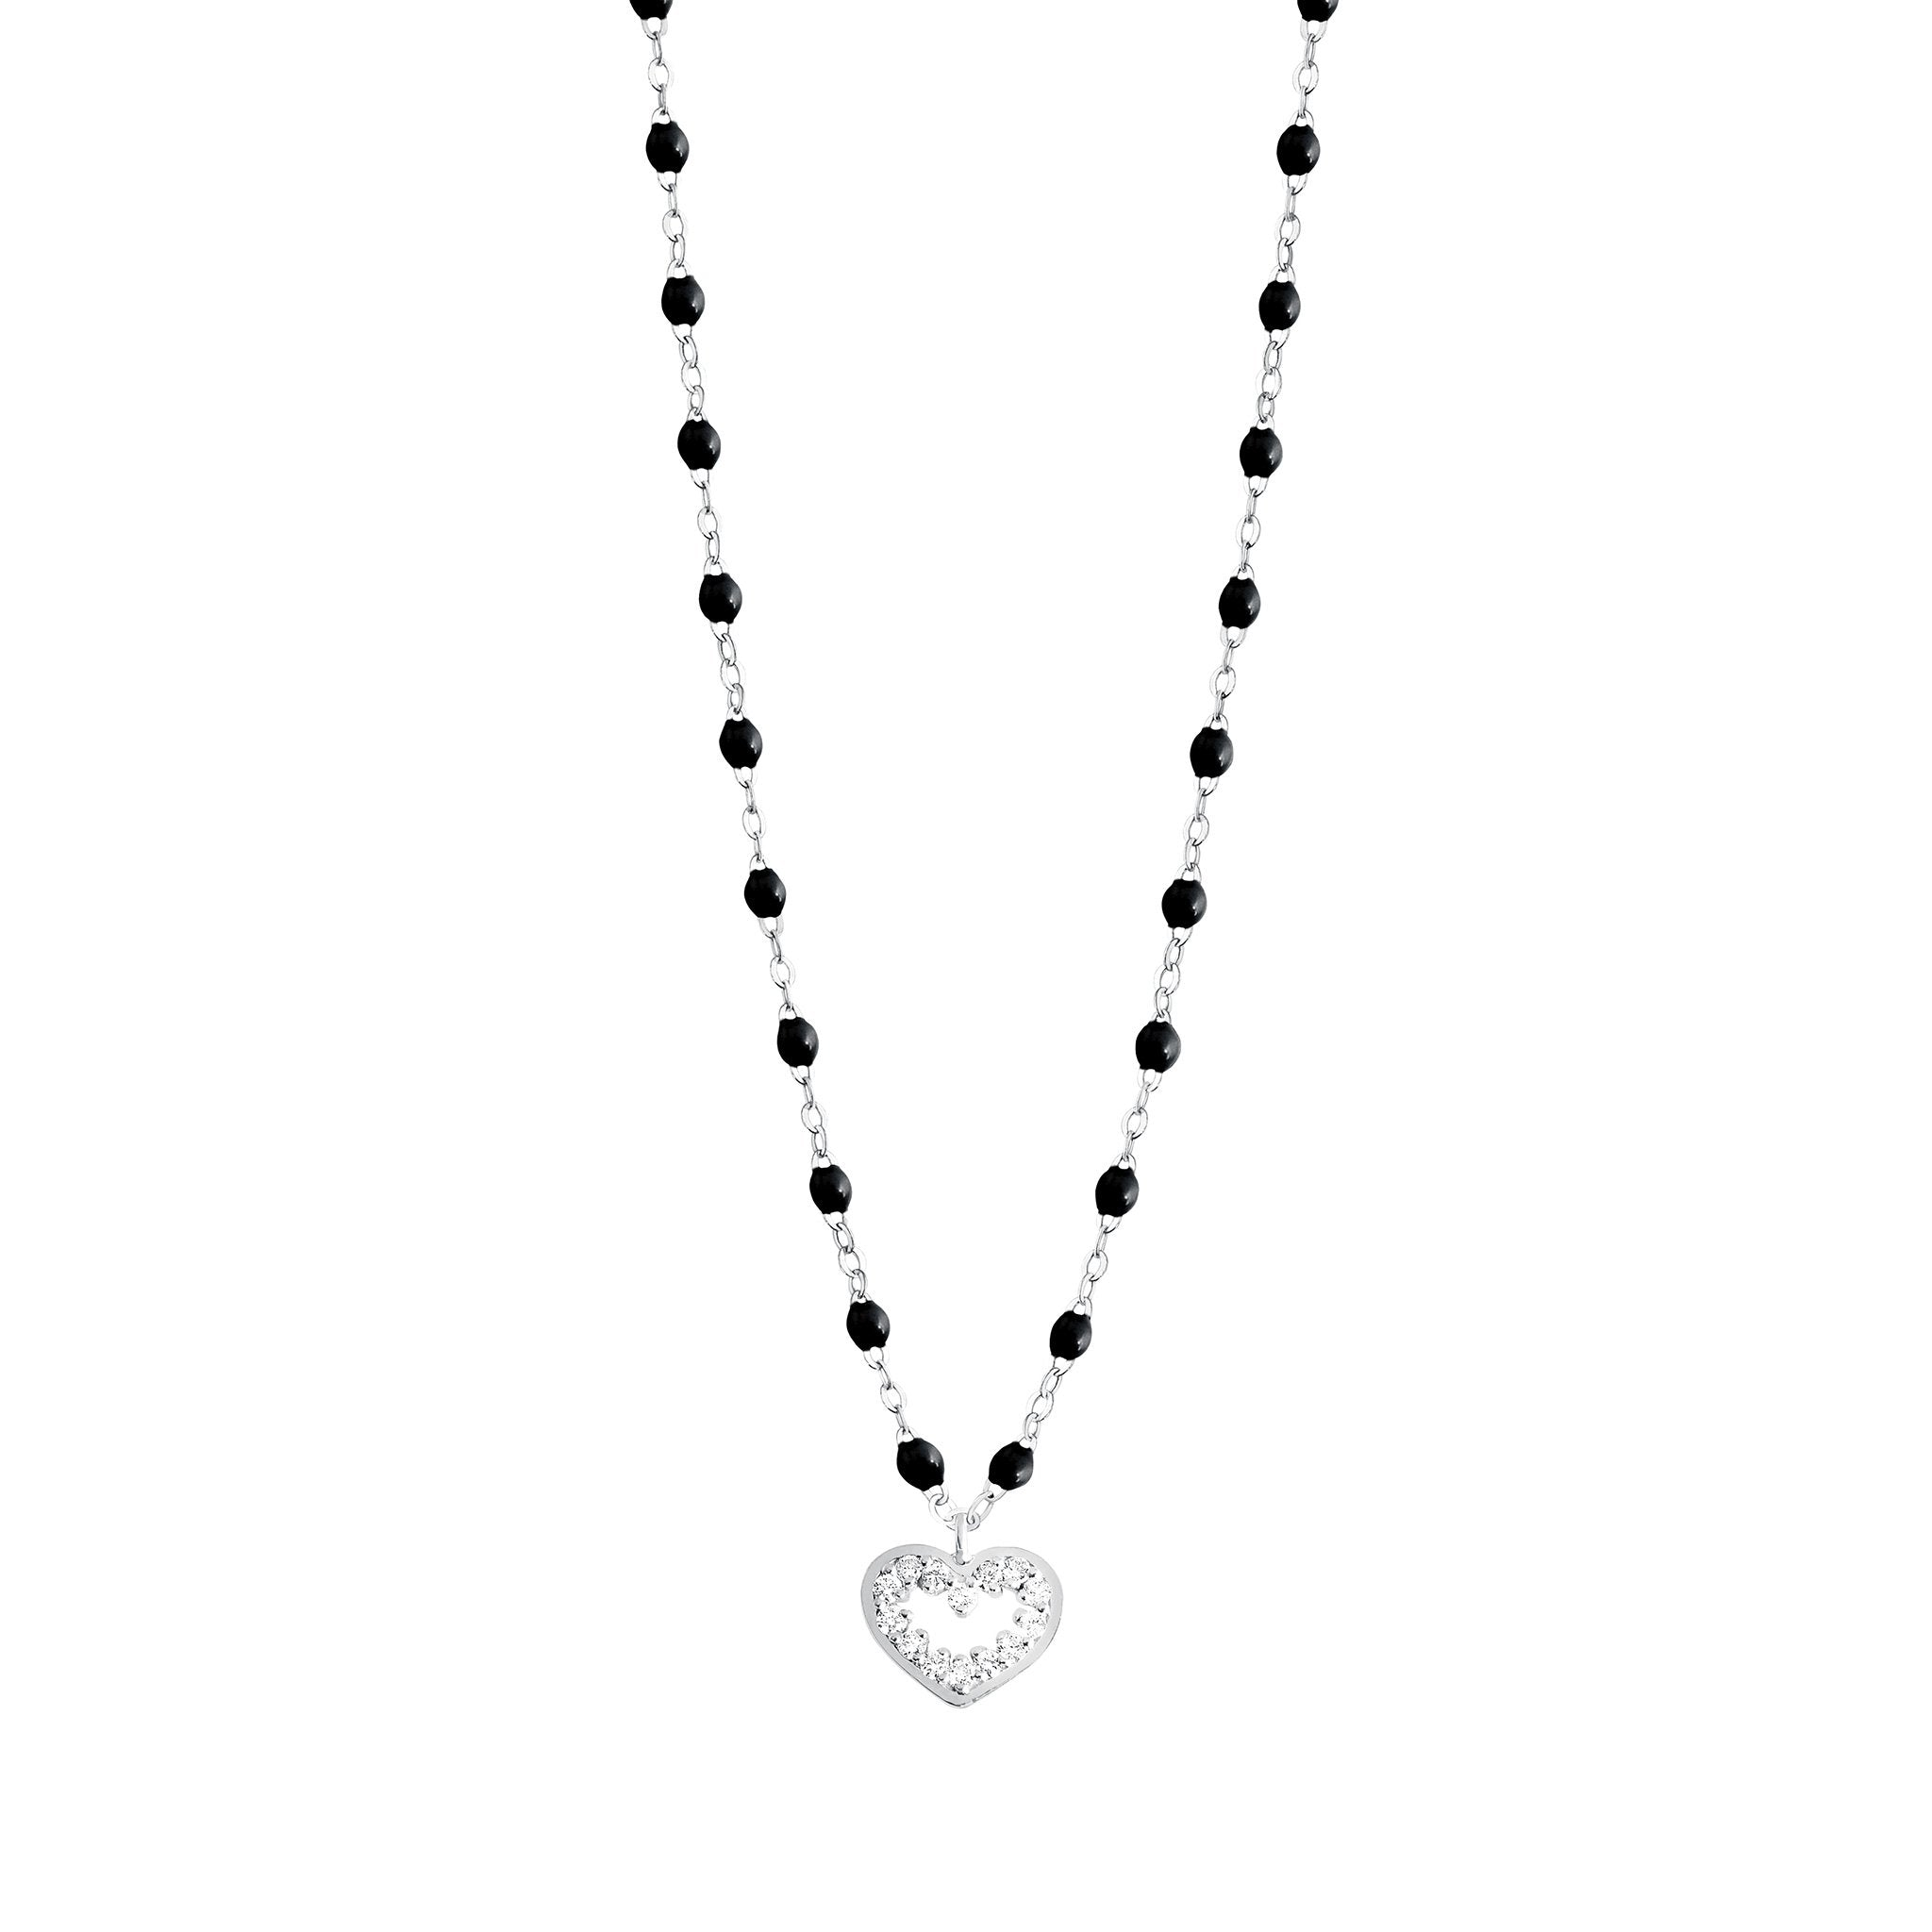 Gigi Clozeau - Heart Supreme Classic Gigi Black diamonds necklace, White Gold, 16.5""